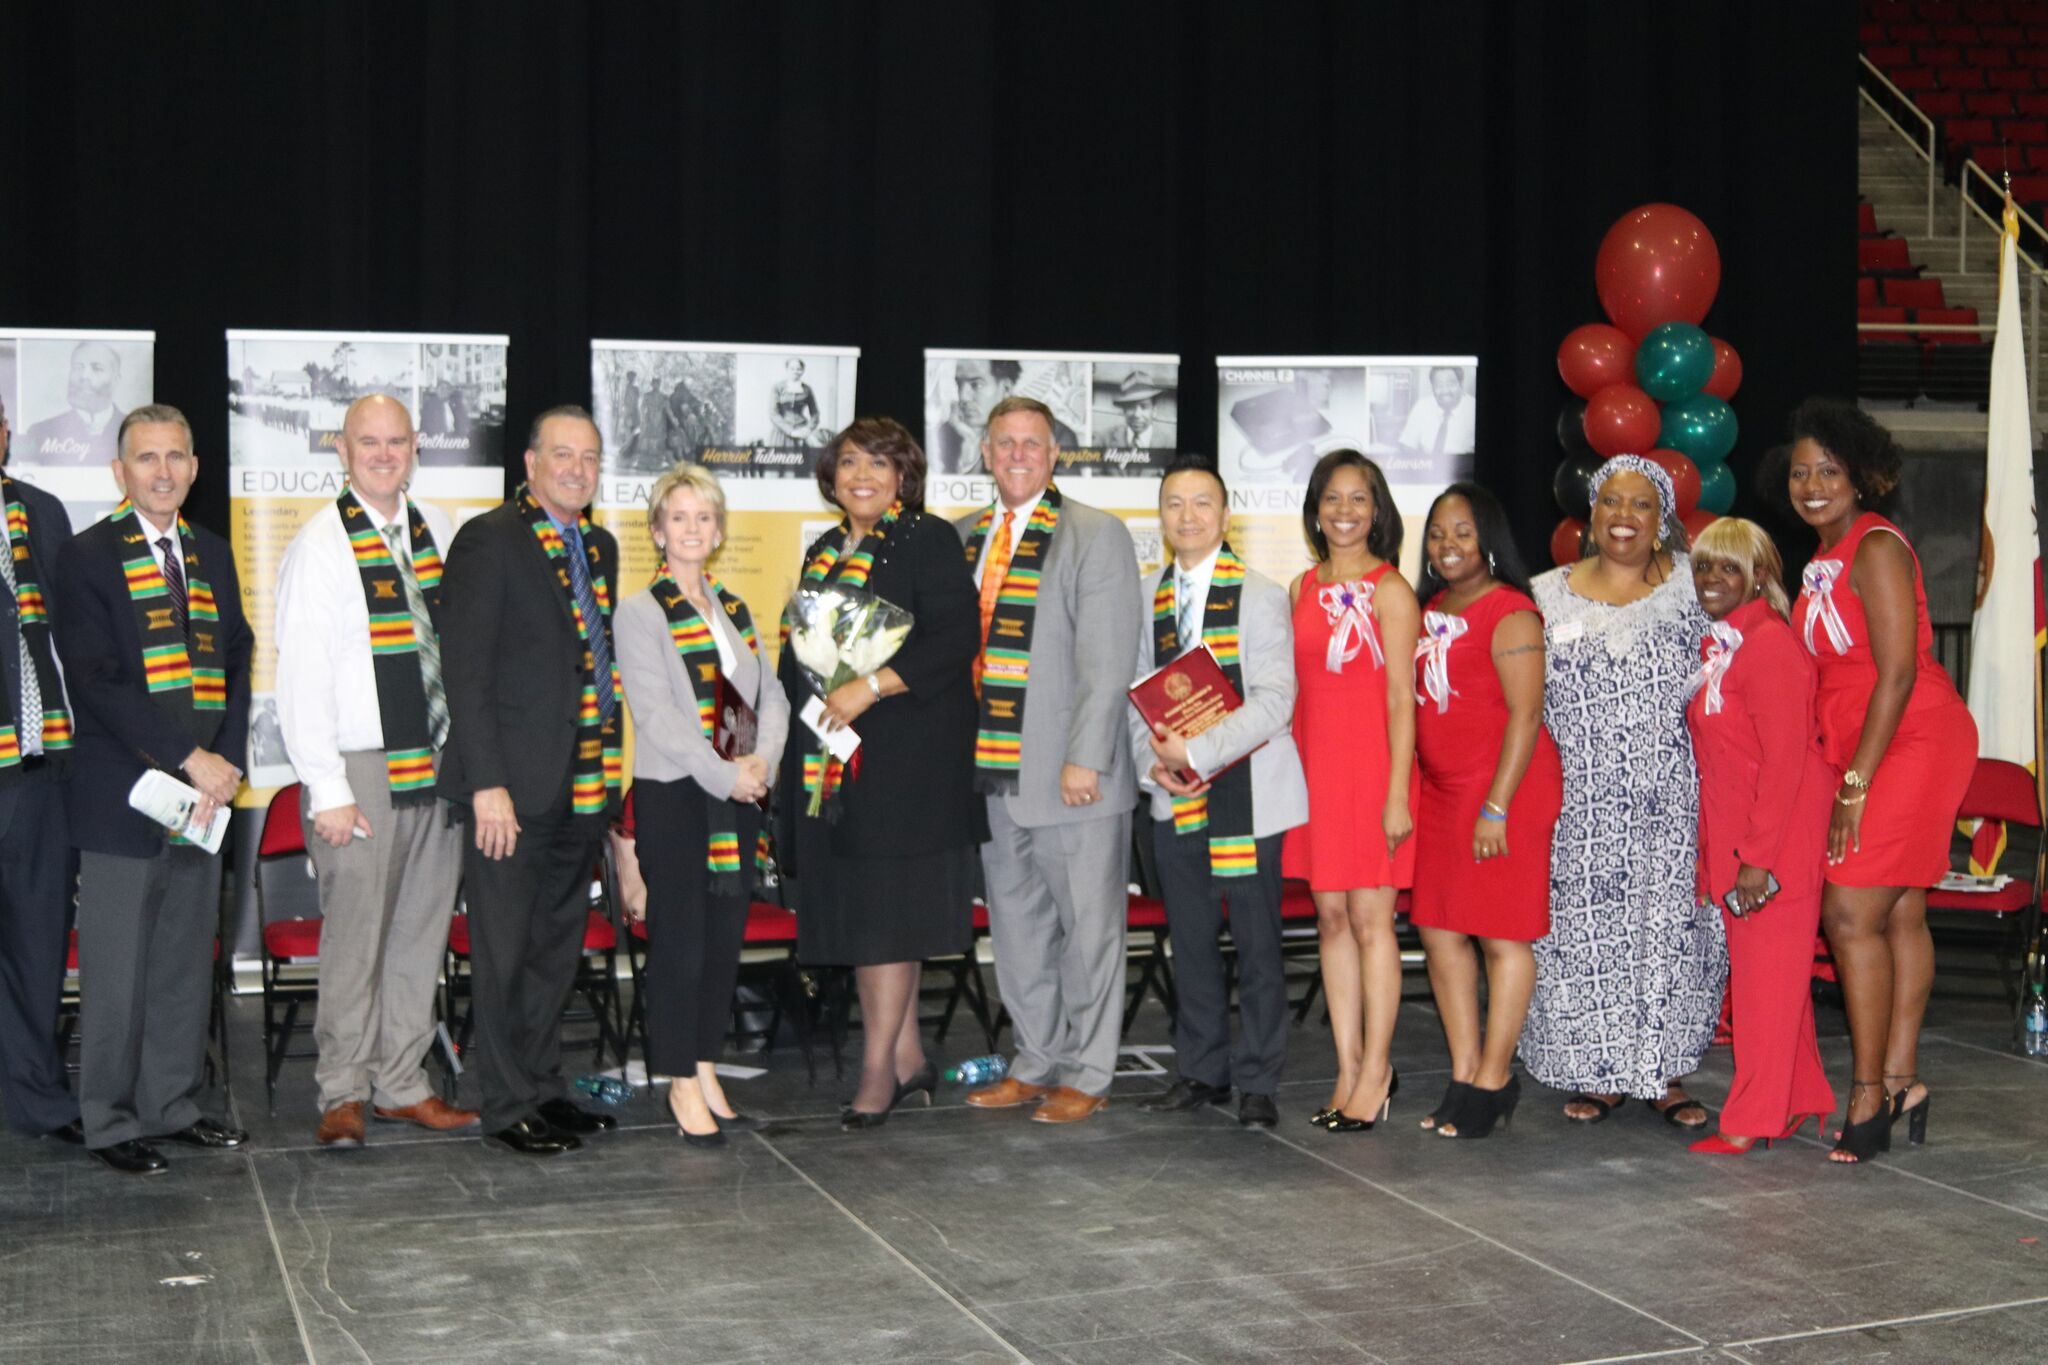 26th African American High School Ceremony Celebration